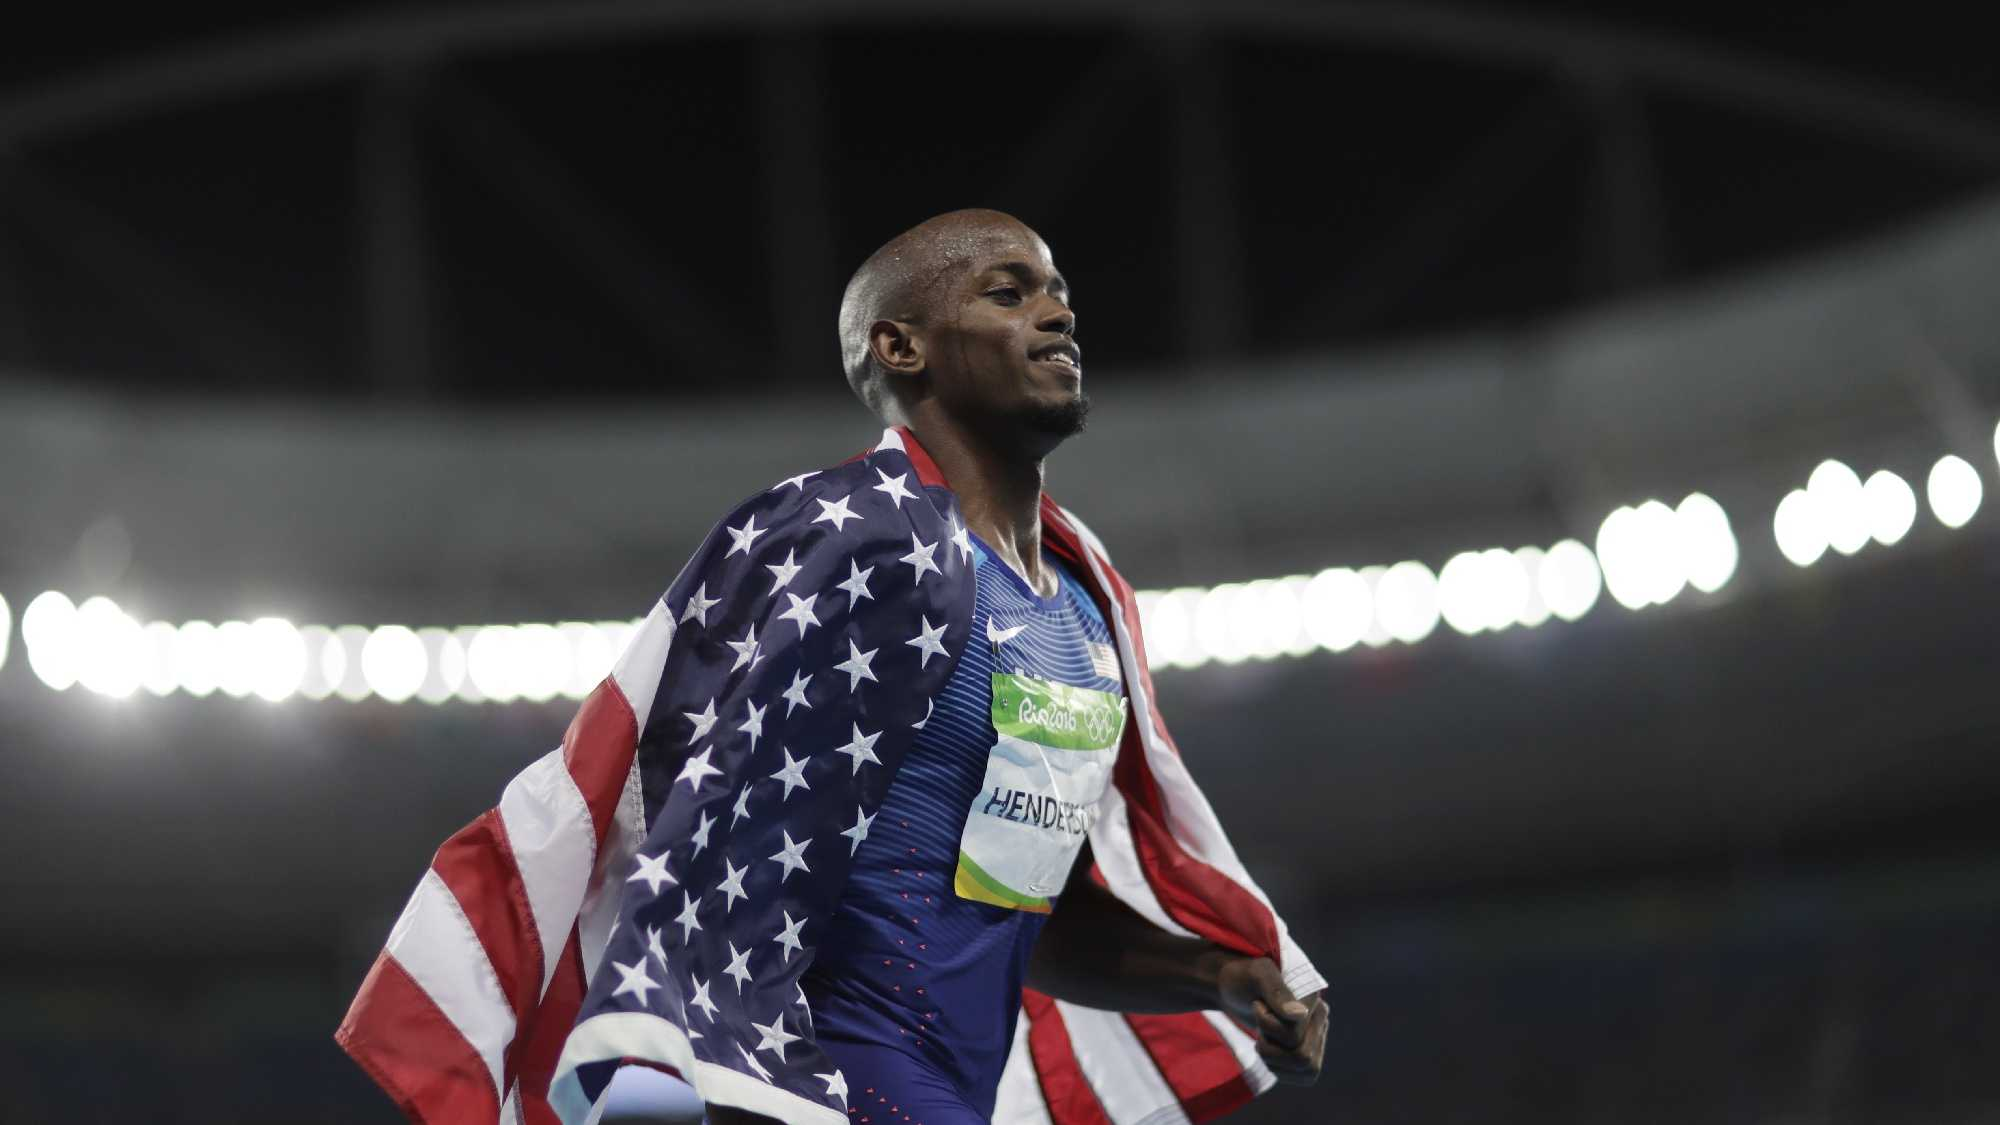 Jeff Henderson of the United States overtook Luvo Manyonga of South Africa on his last jump to win the Olympic long jump gold medal.